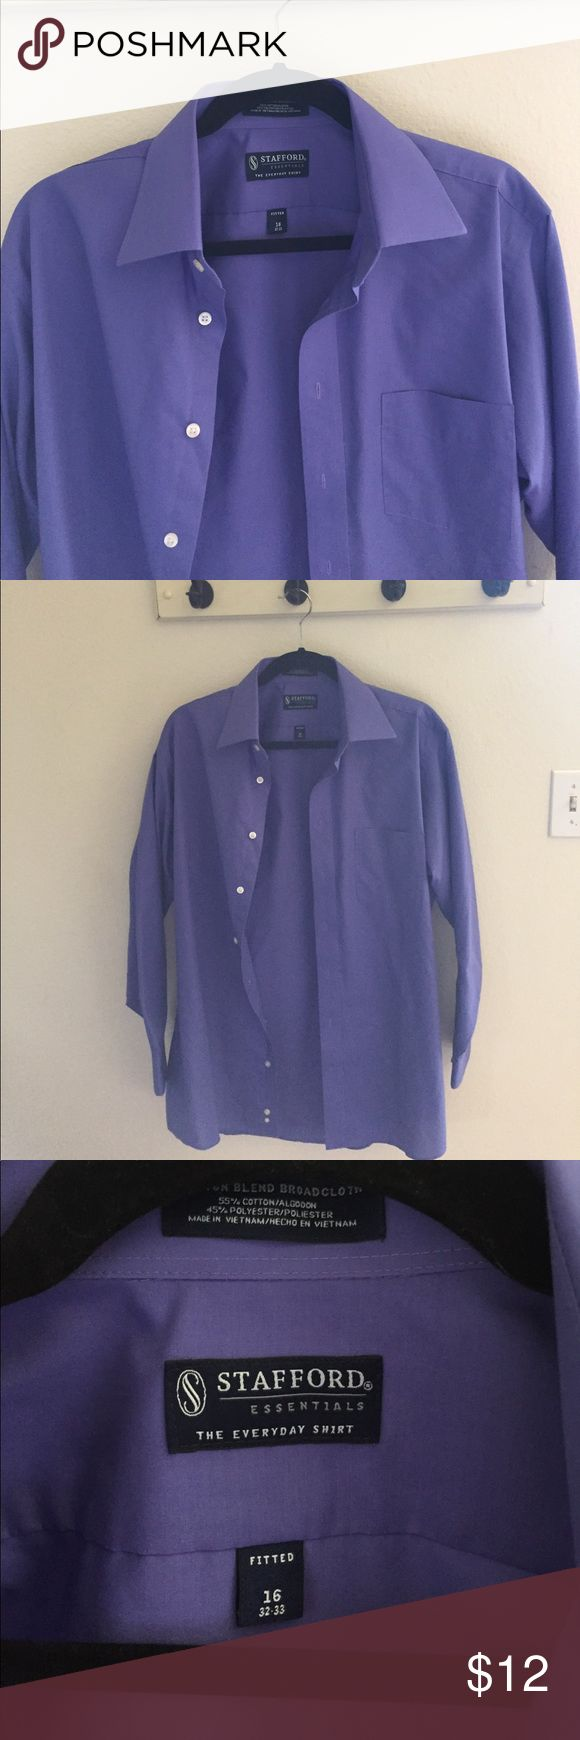 Purple dress shirt Purple Stafford dress shirt in great condition! Bundle and save! Stafford Shirts Dress Shirts